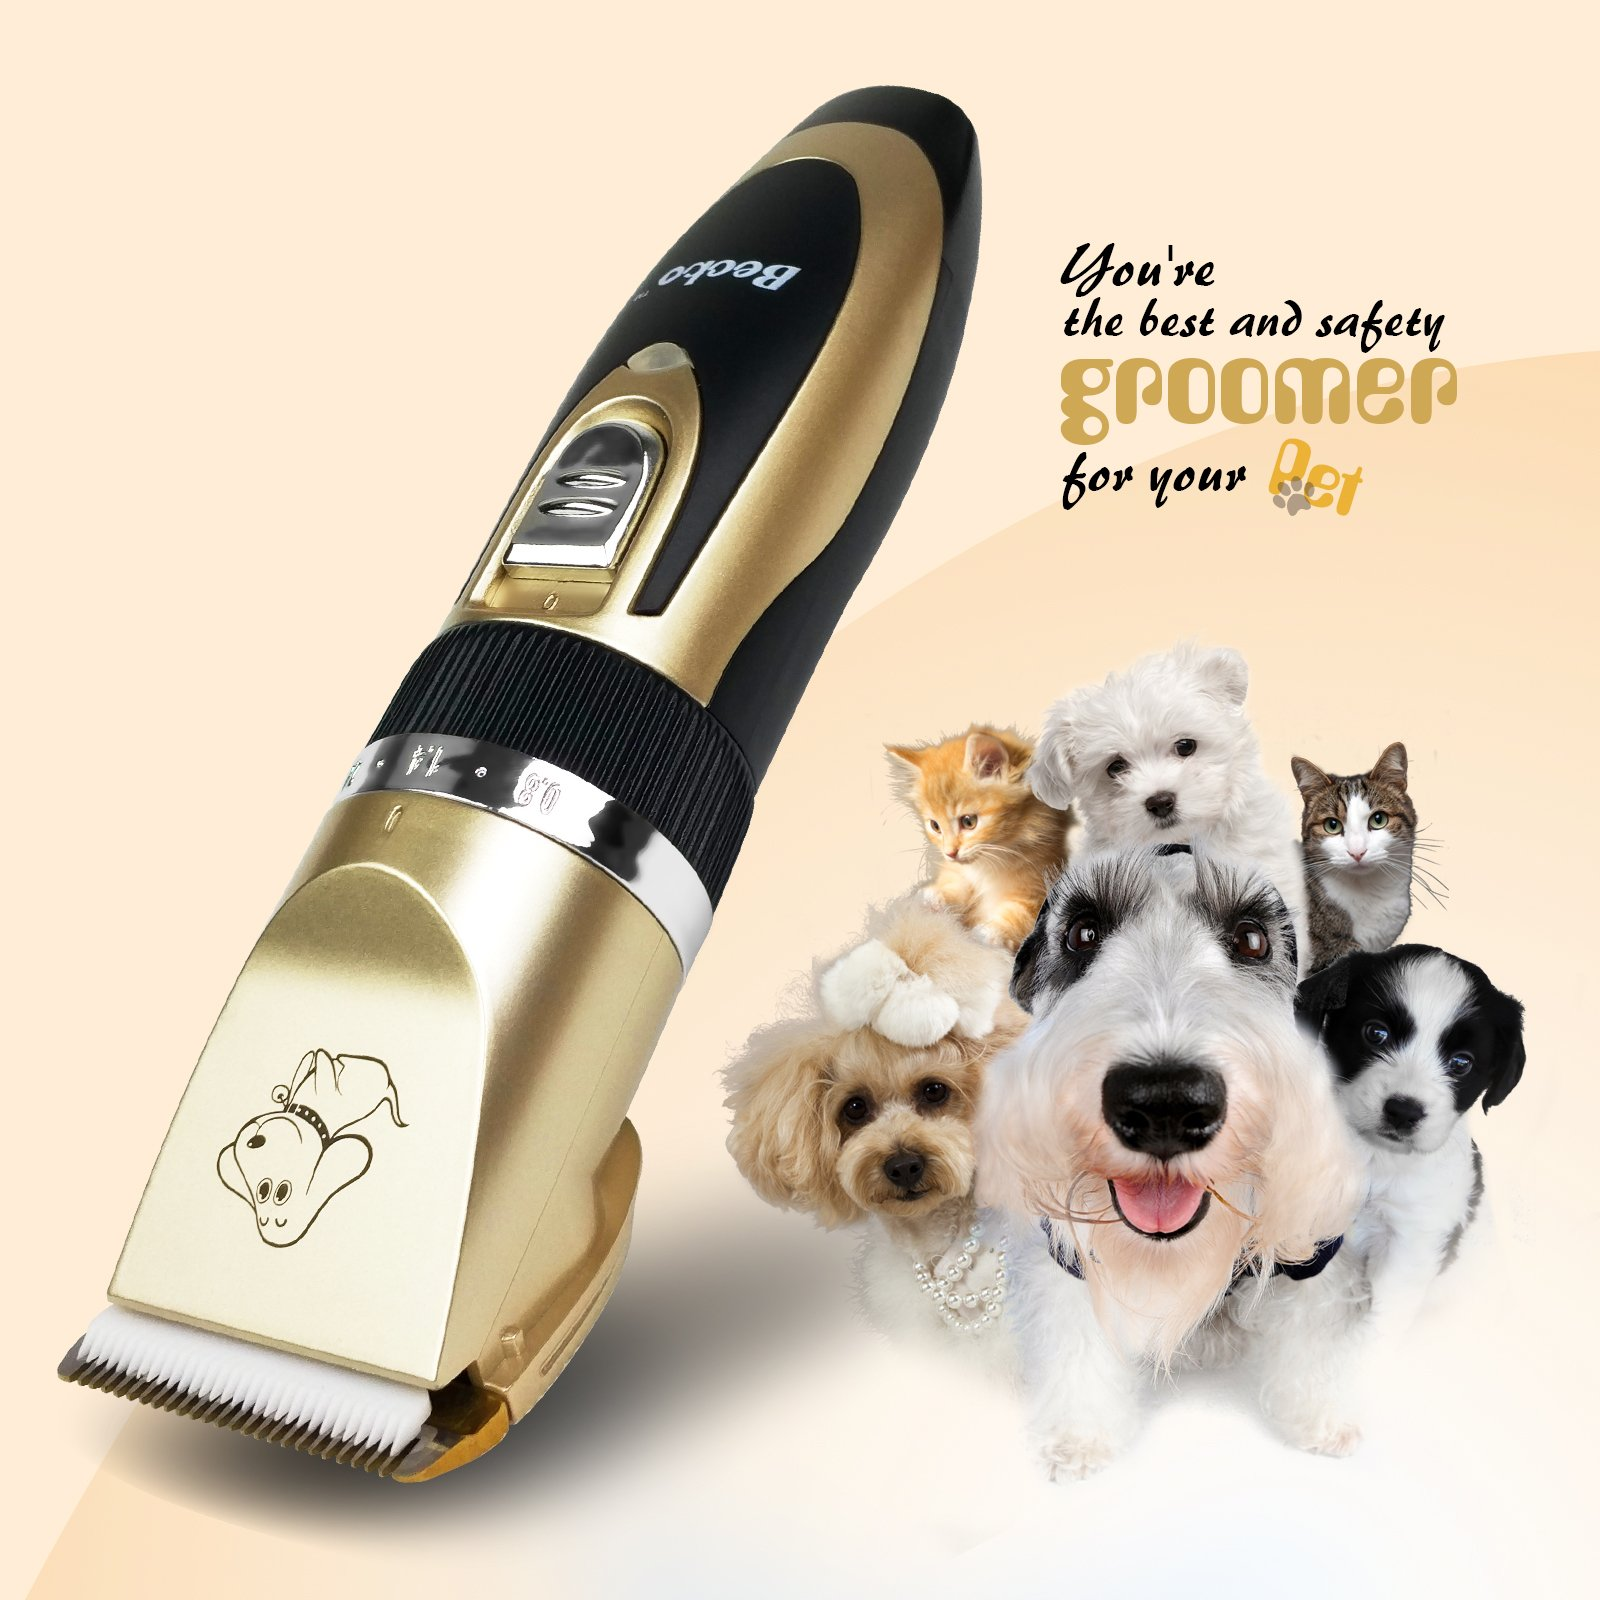 Becko Cordless Low Noise Pet Hair Clippers, for Dog Cat Animals Grooming Hair Trimming by Becko US